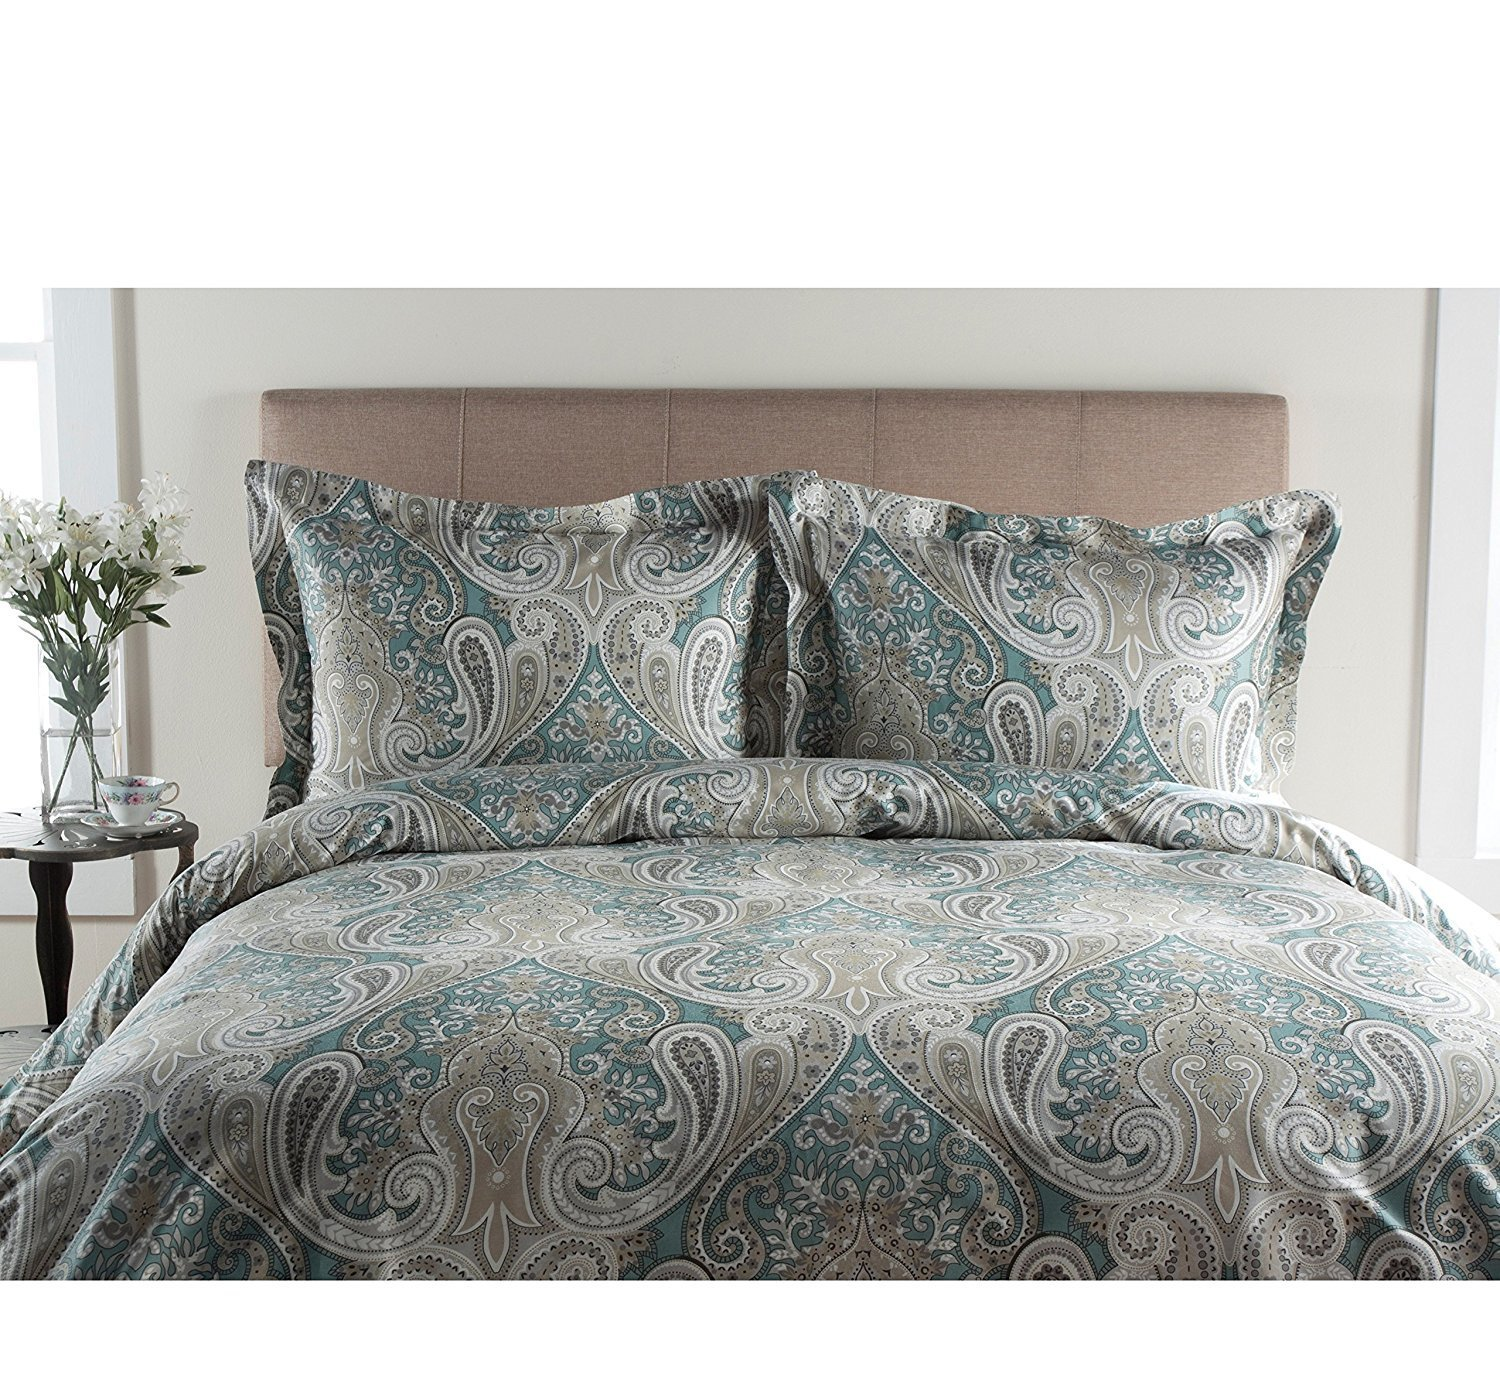 UNK 3pc Hippie King Duvet Set, Damask Flowers, Floral Bohemian Themed Bedding, Paisley Pattern, Vibrant Colors, Aqua Blue Grey Prints, Indie Hippy Spirit, Flower Medallion Kashmir Boho Chic